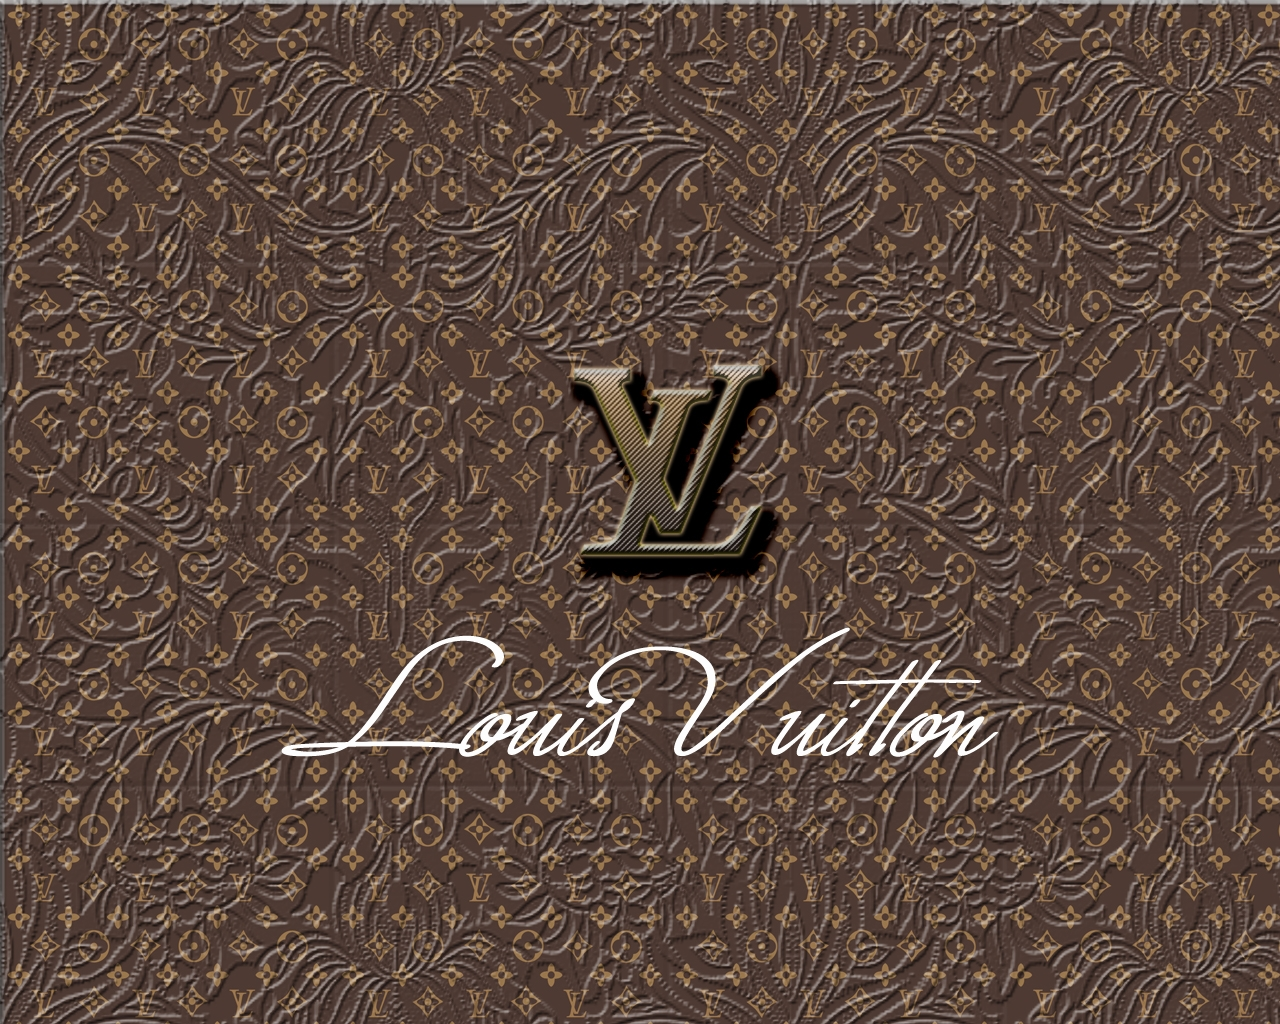 Wallpapers Louis Vuitton Wallpaper Marca Fashion 12801024 Wallpaper 1280x1024